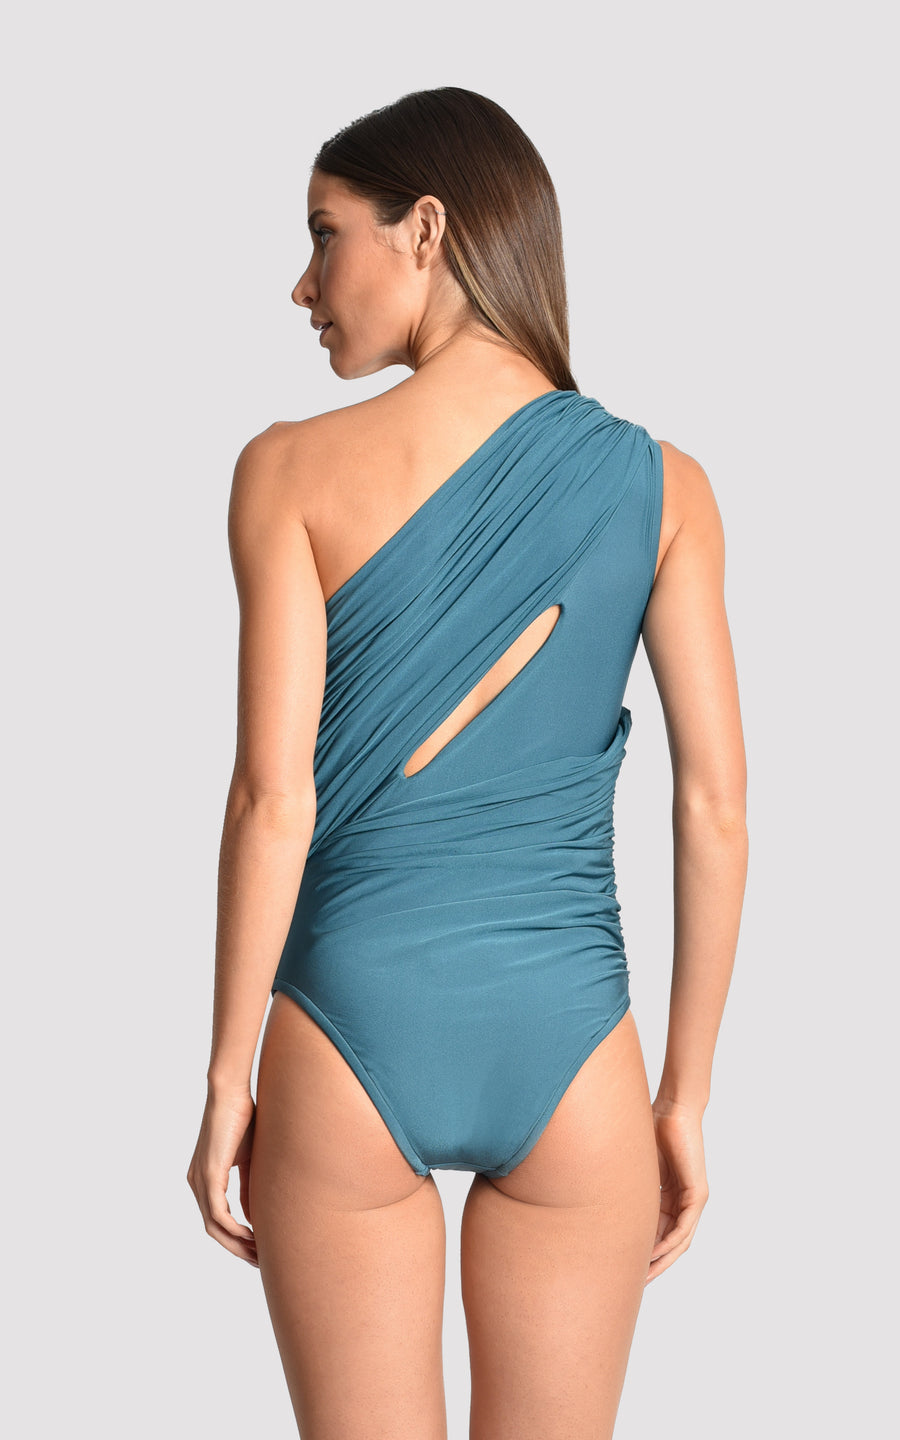 Agate Slit Asymmetrical Runway One Piece Swimsuit